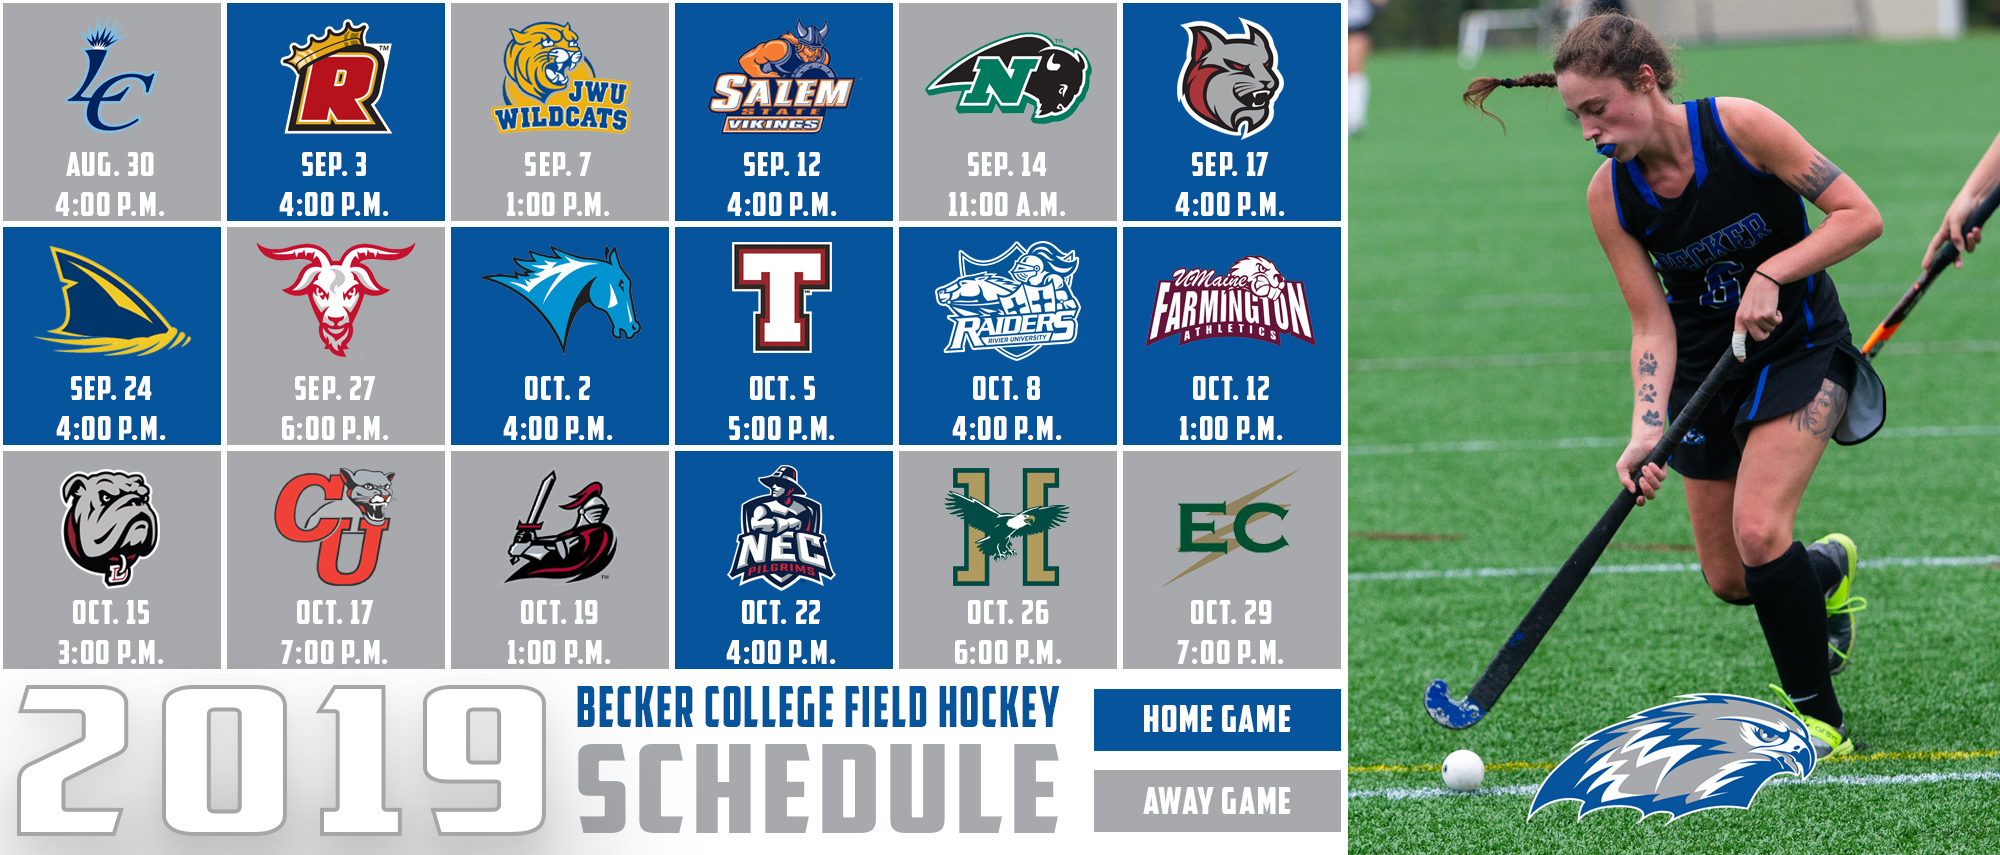 2019 Becker College Field Hockey Schedule